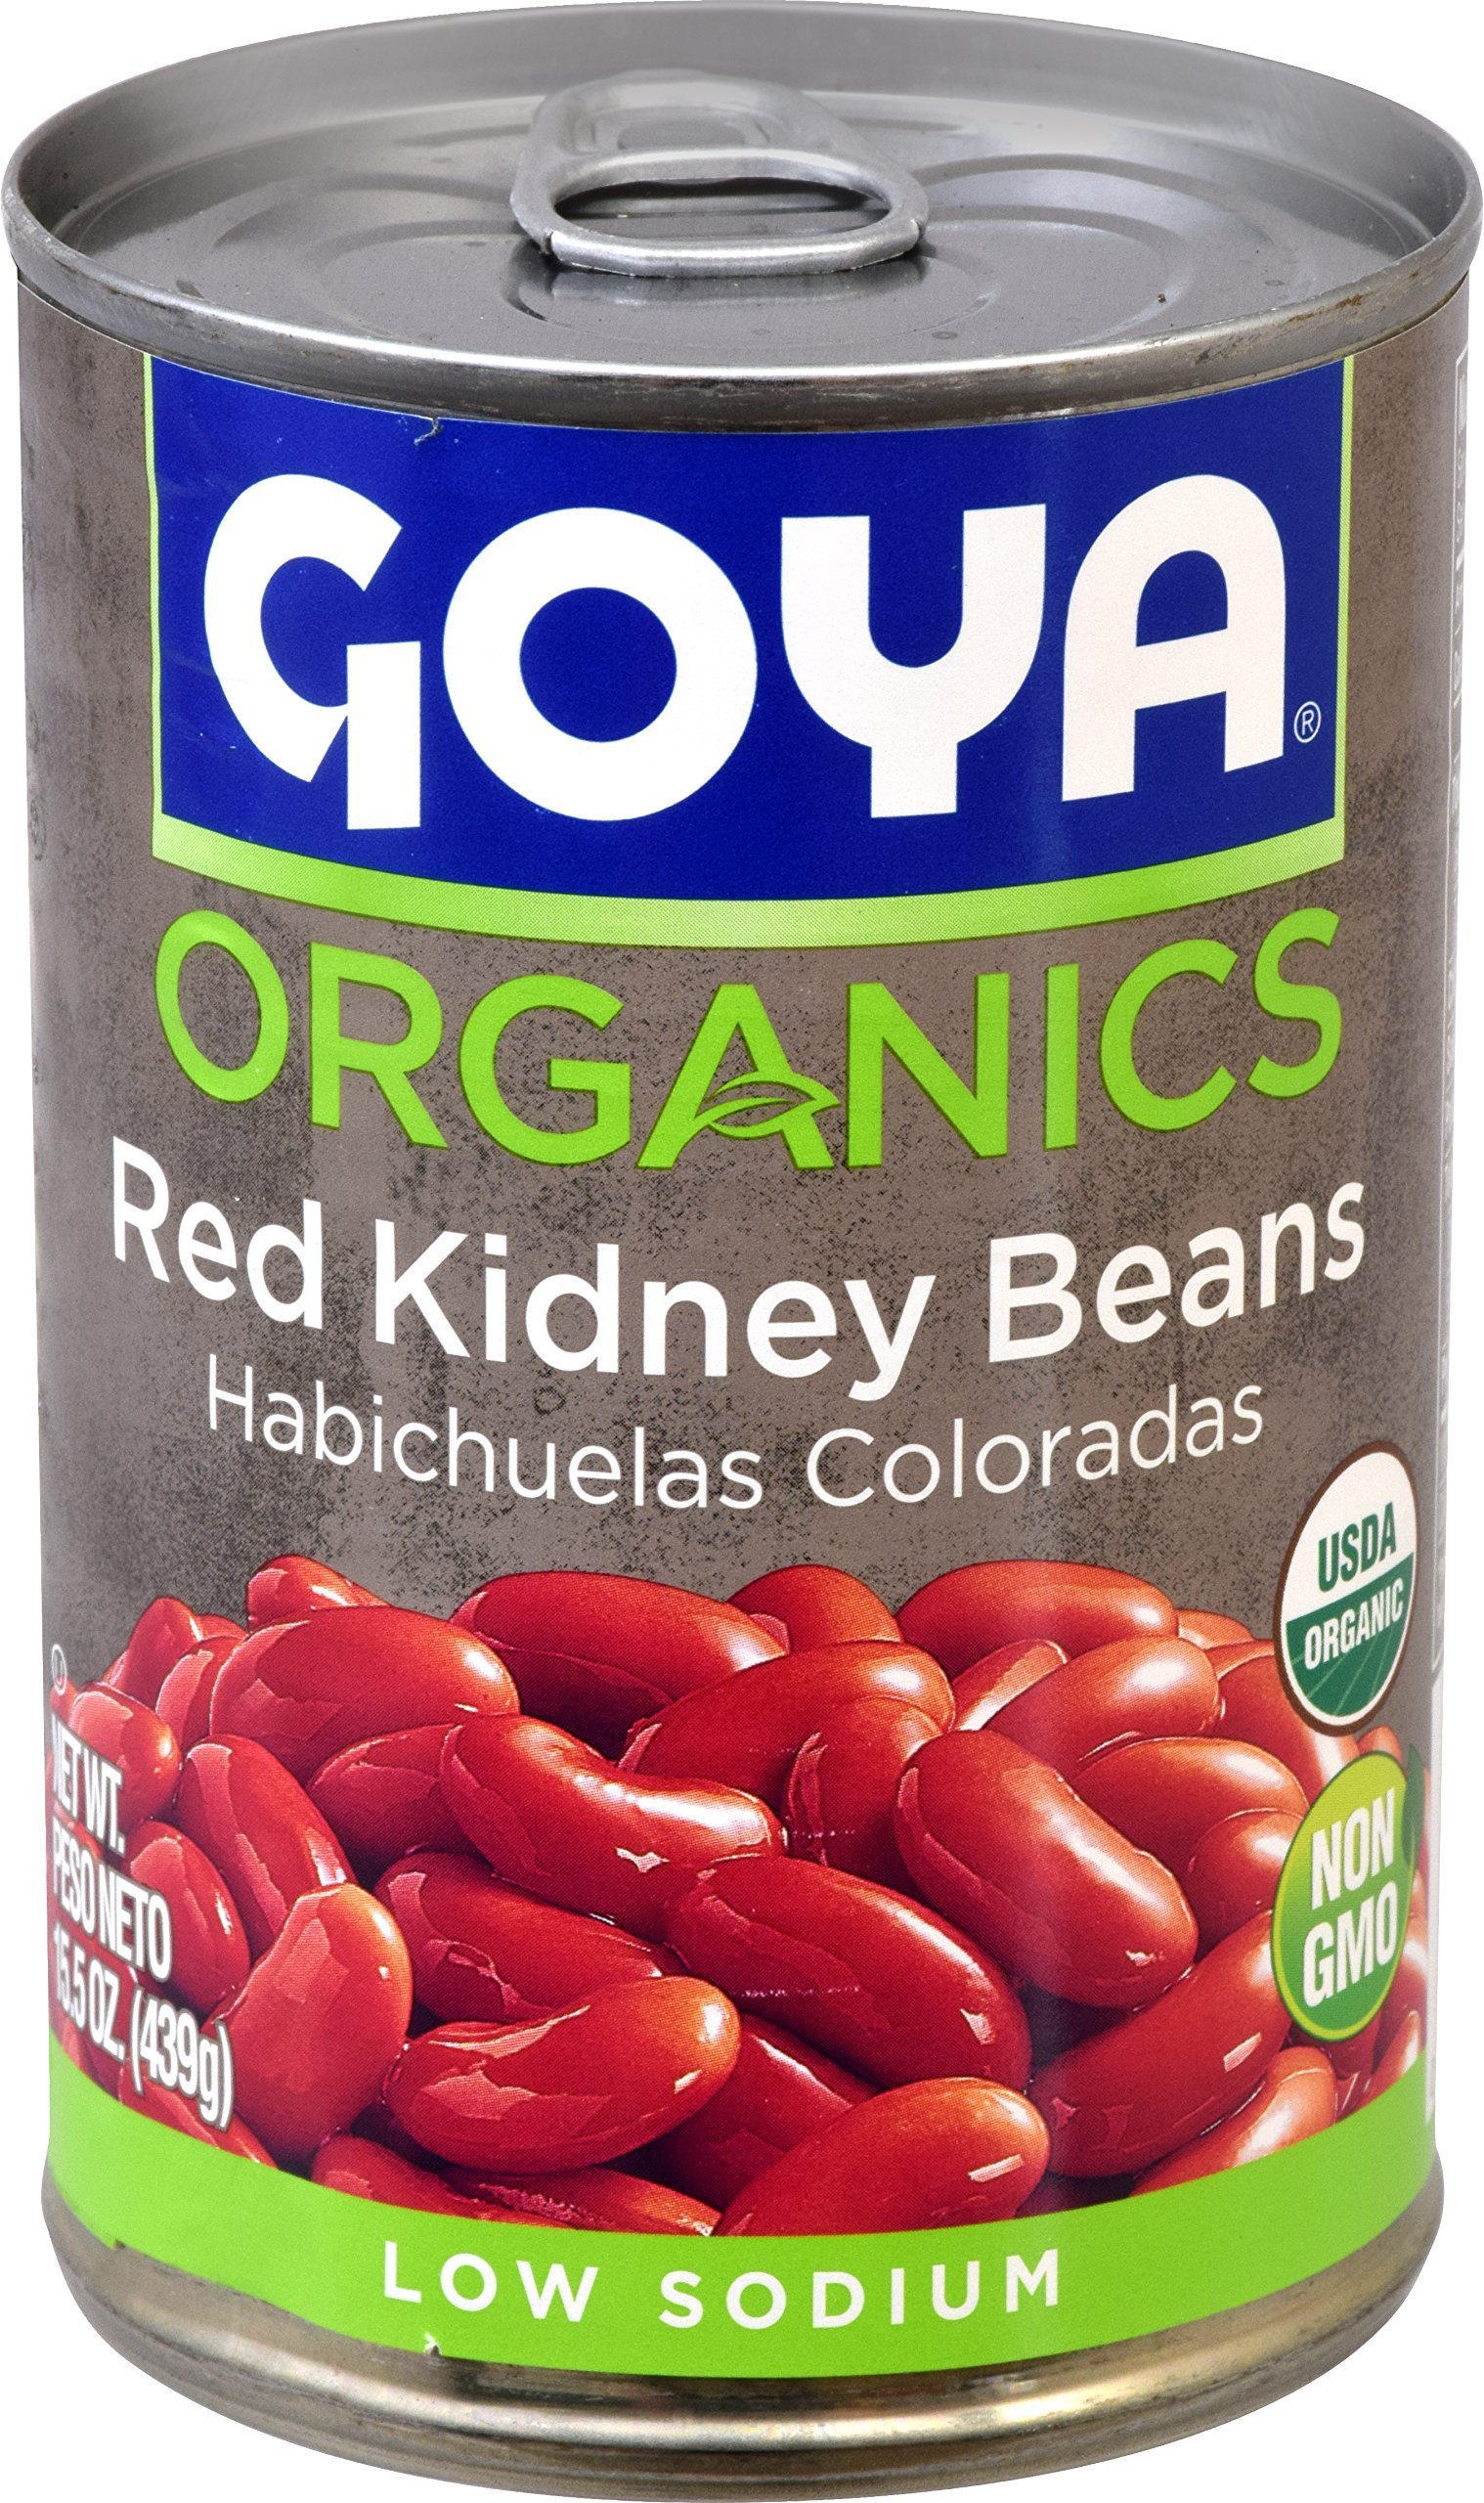 Goya Foods Organics Red Kidney Beans Low Sodium, 15.5 oz by Goya